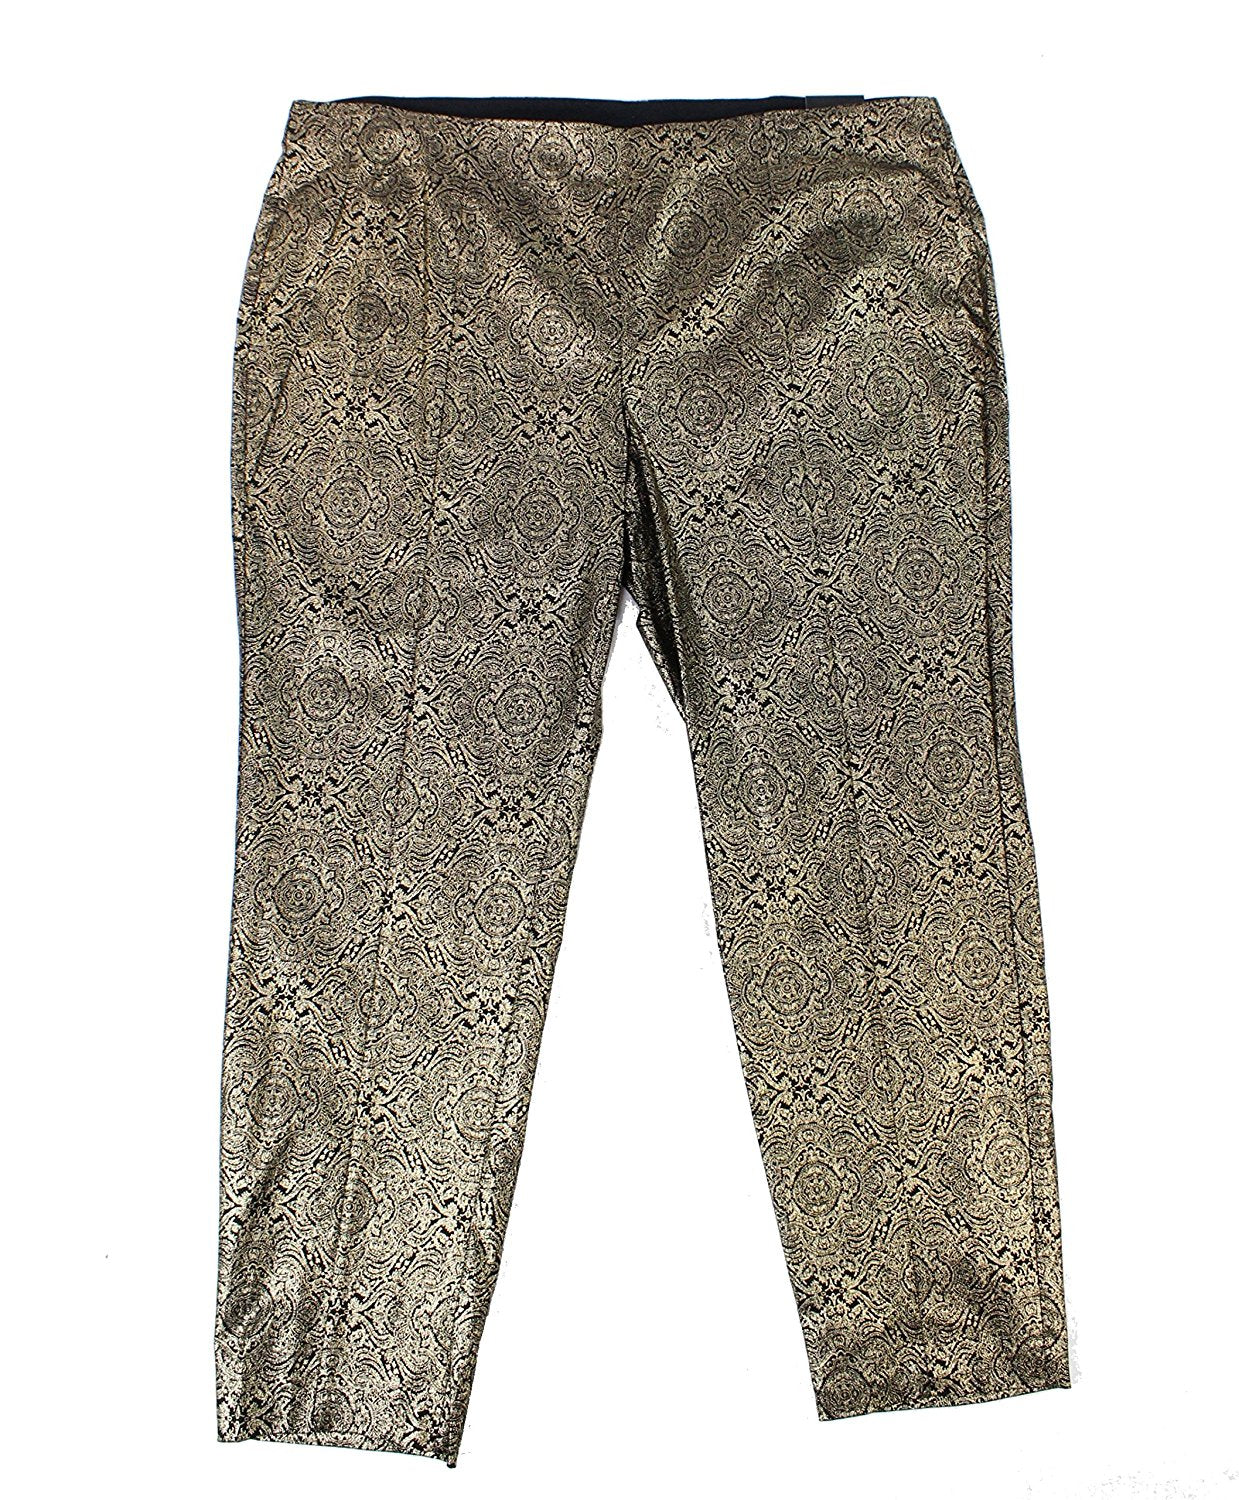 0ed406648e677 Alfani Plus Size Metallic Pull-On Skinny Pants – Retail Trunk